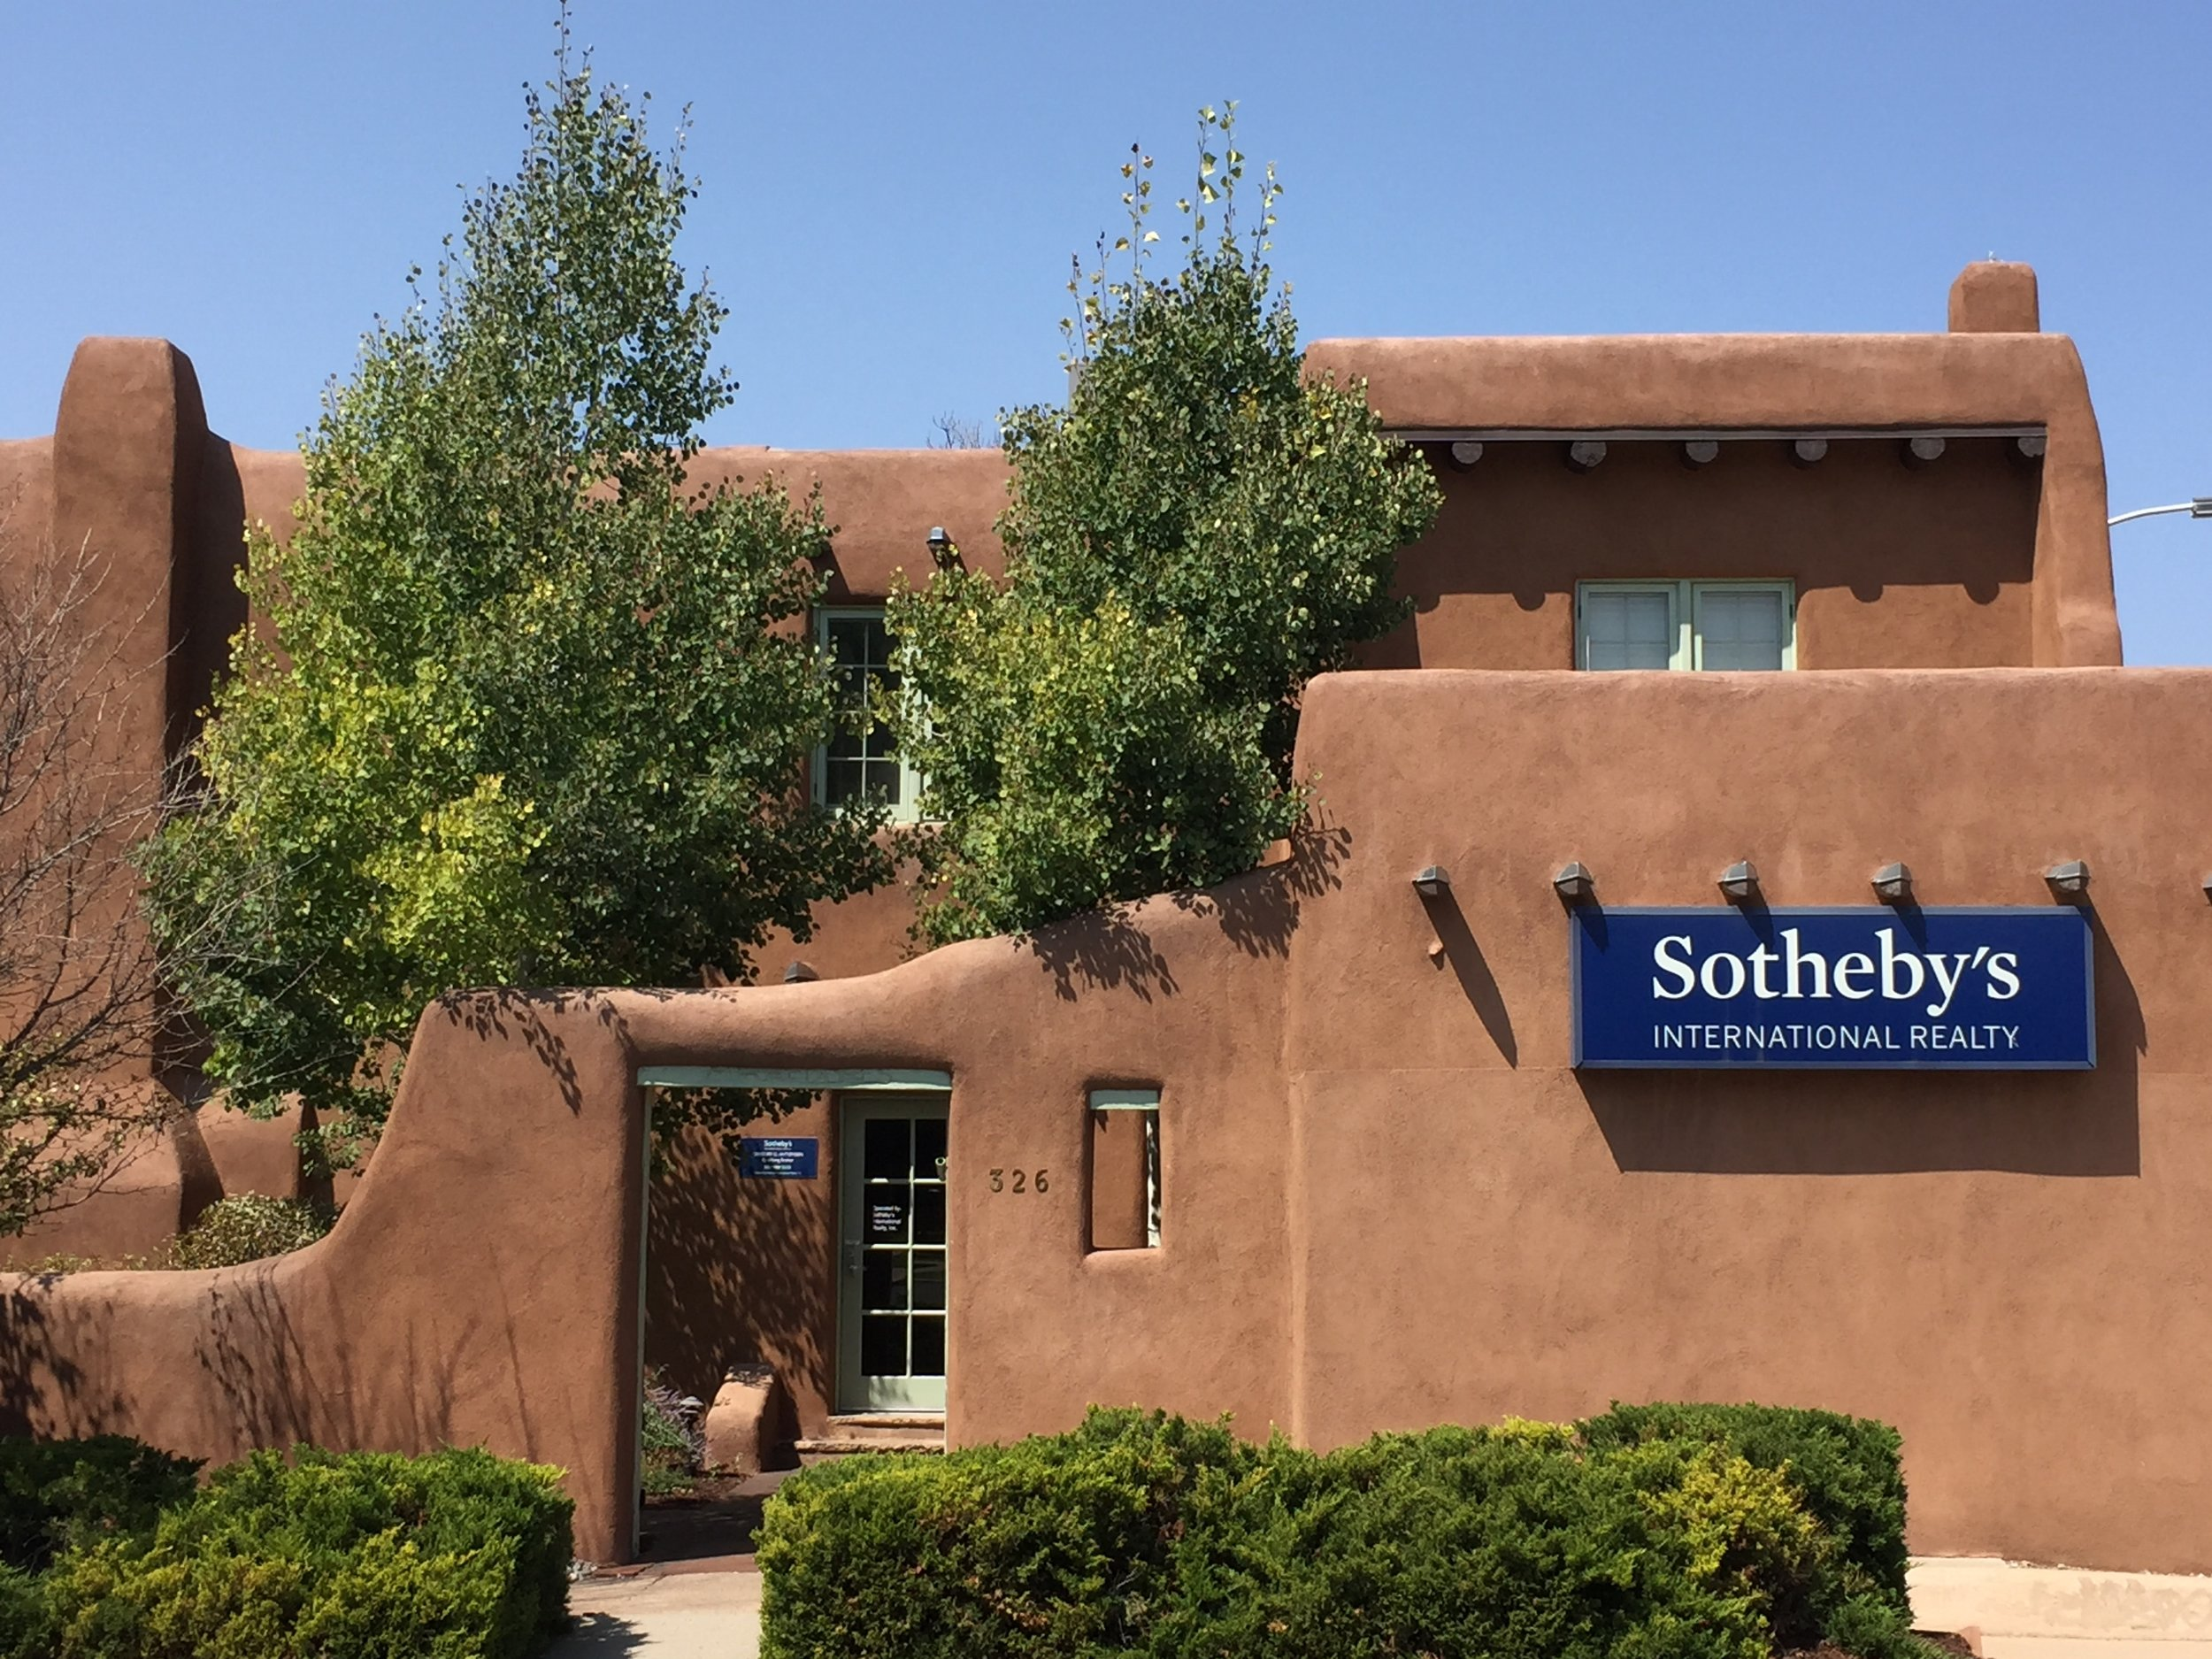 Sotheby's HQ